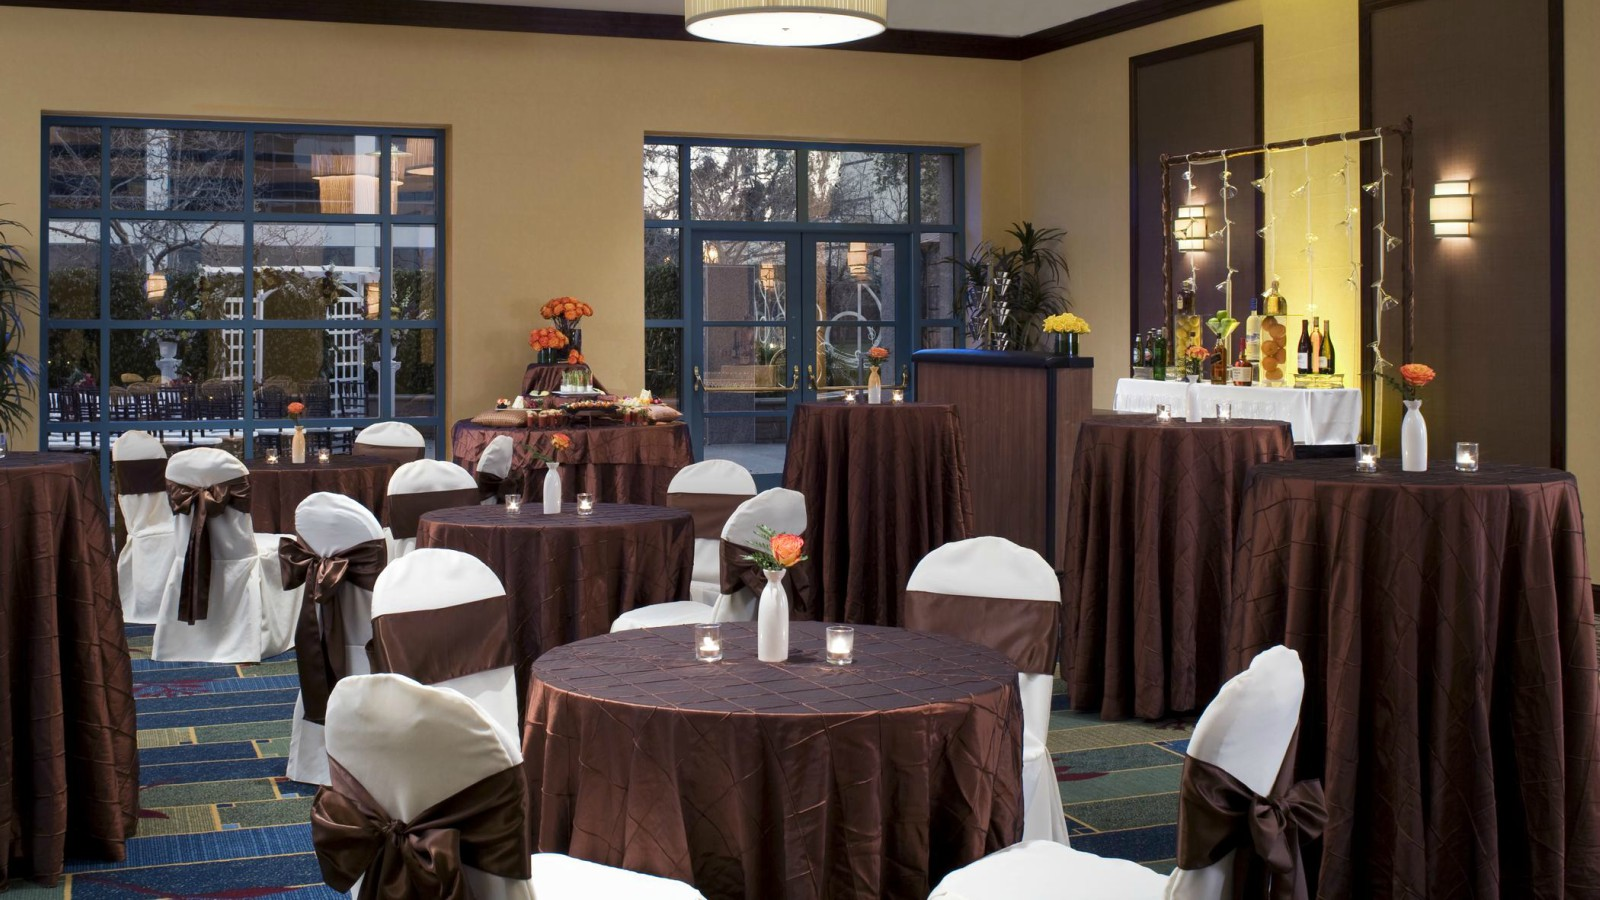 Cerritos Meeting Space - Garden Terrace Ballroom